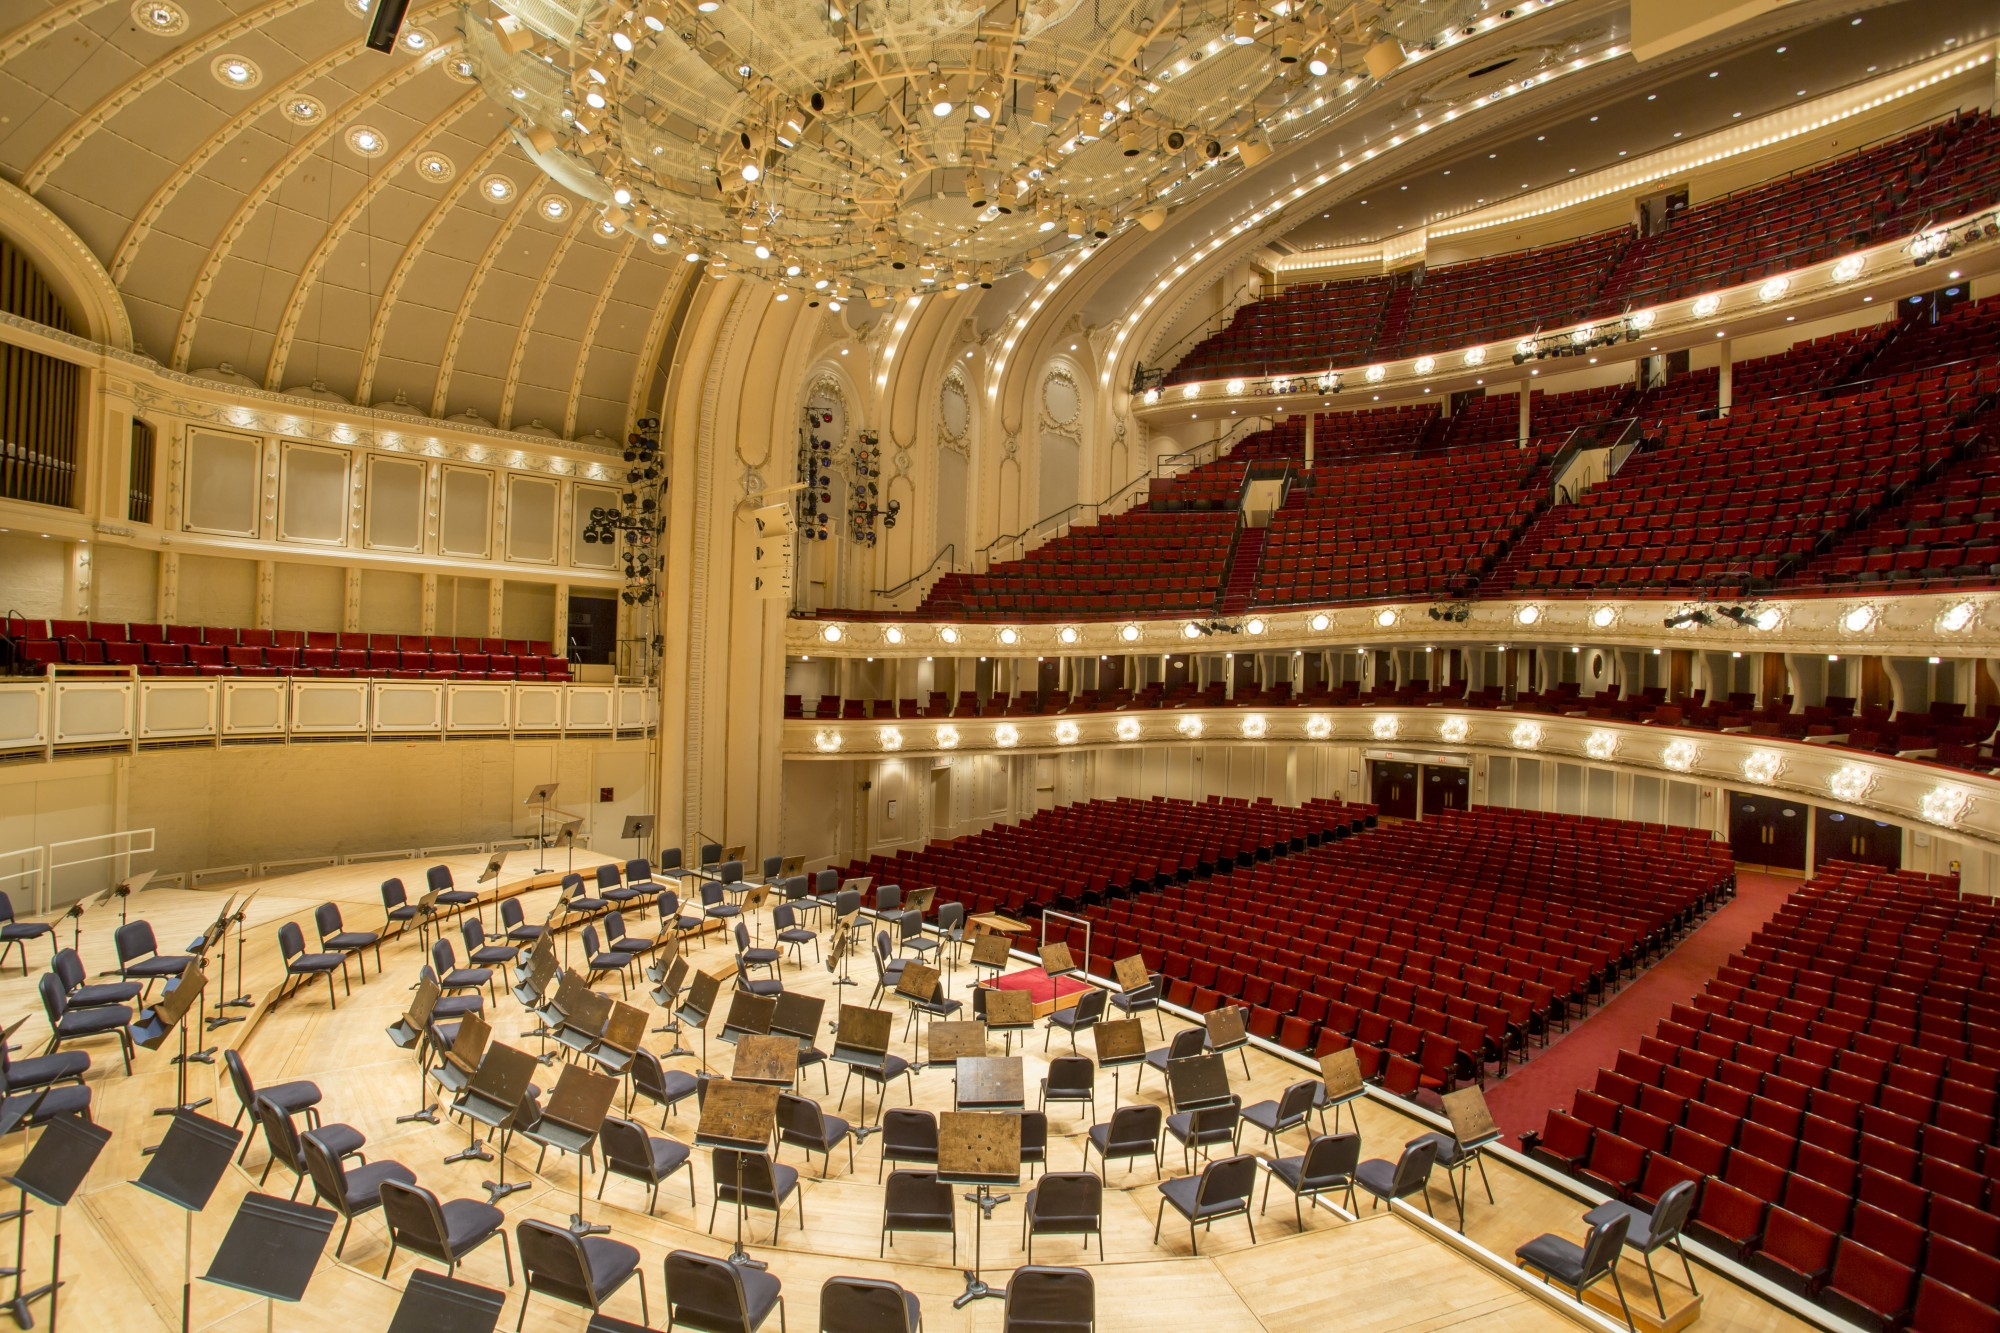 orchestra hall at symphony center · sites · open house chicago